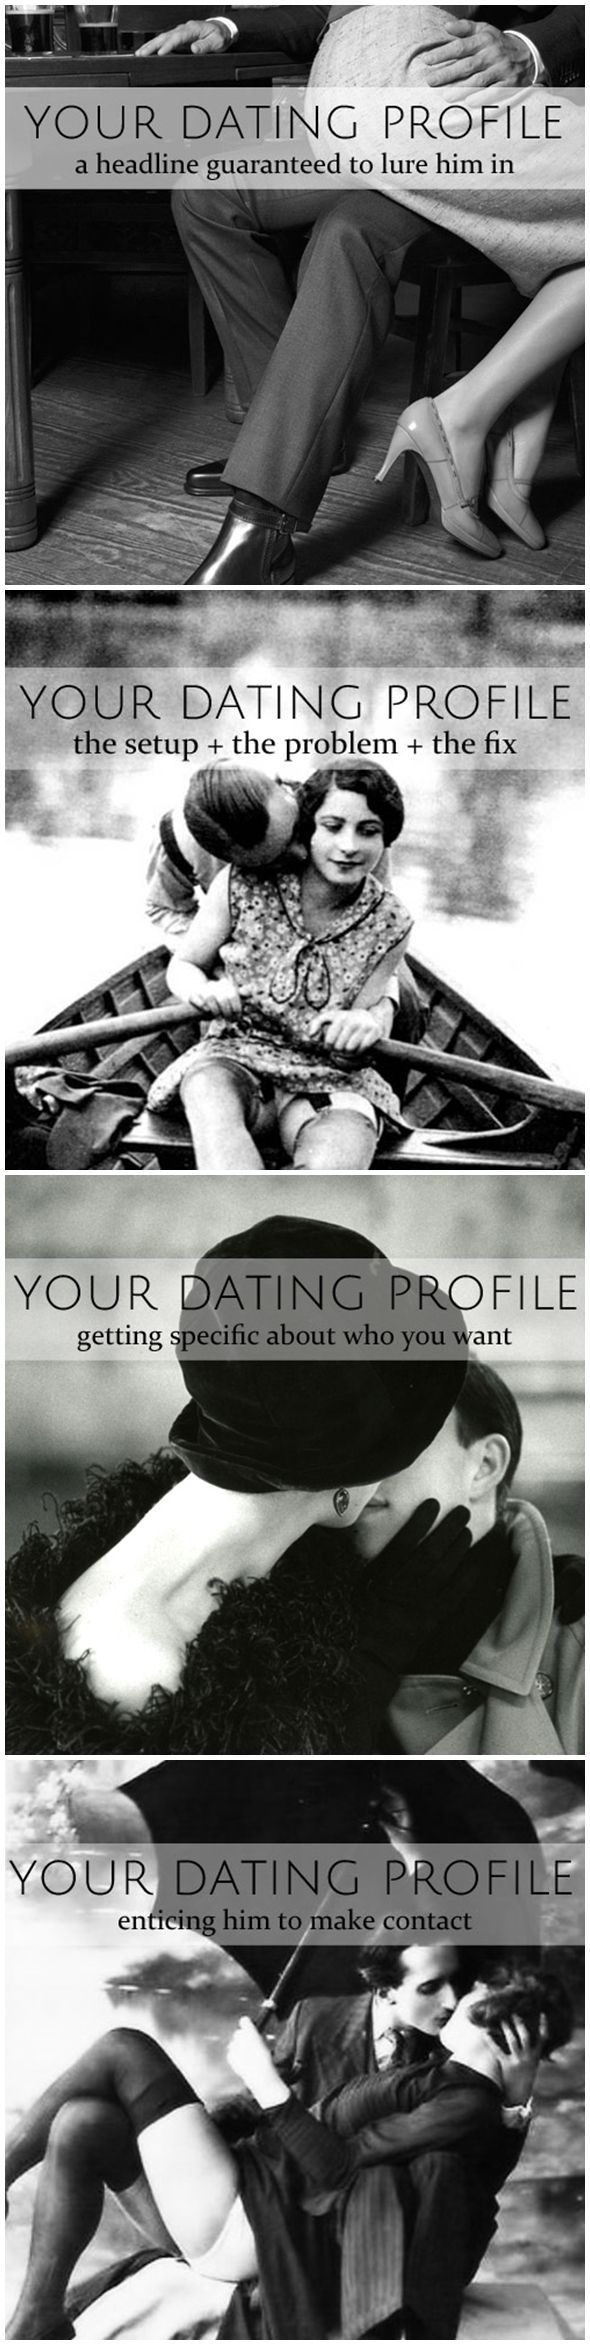 Online Dating Profile Headlines And Profile Examples